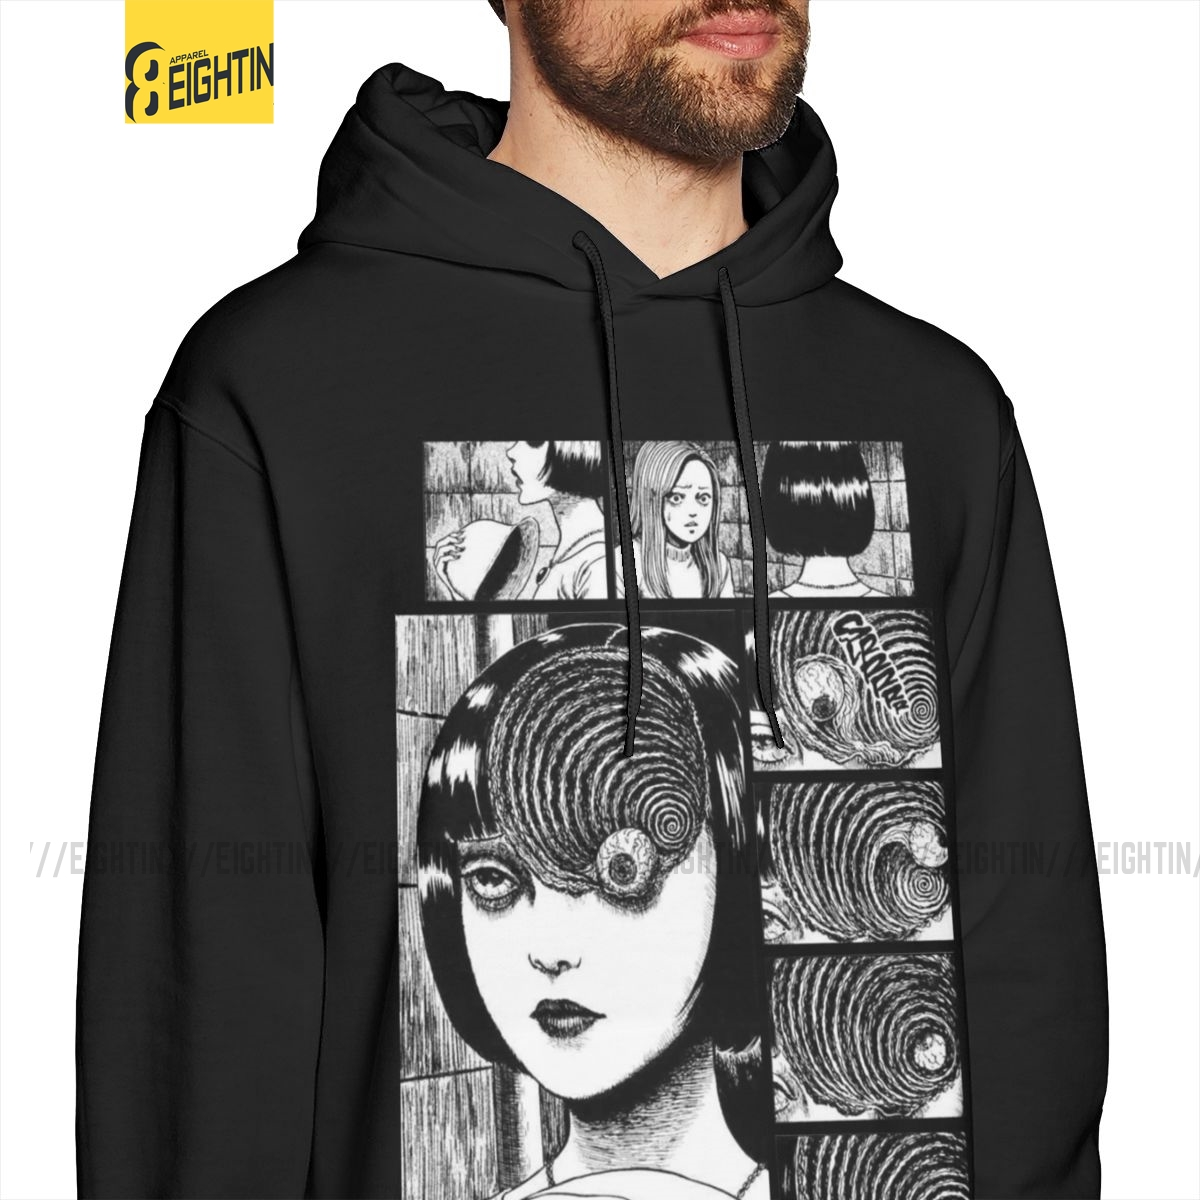 Men Uzumaki Junji Ito Sweatshirts Horror Manga Hoodies White Purified Cotton Hooded Stylish Hoodie Shirt